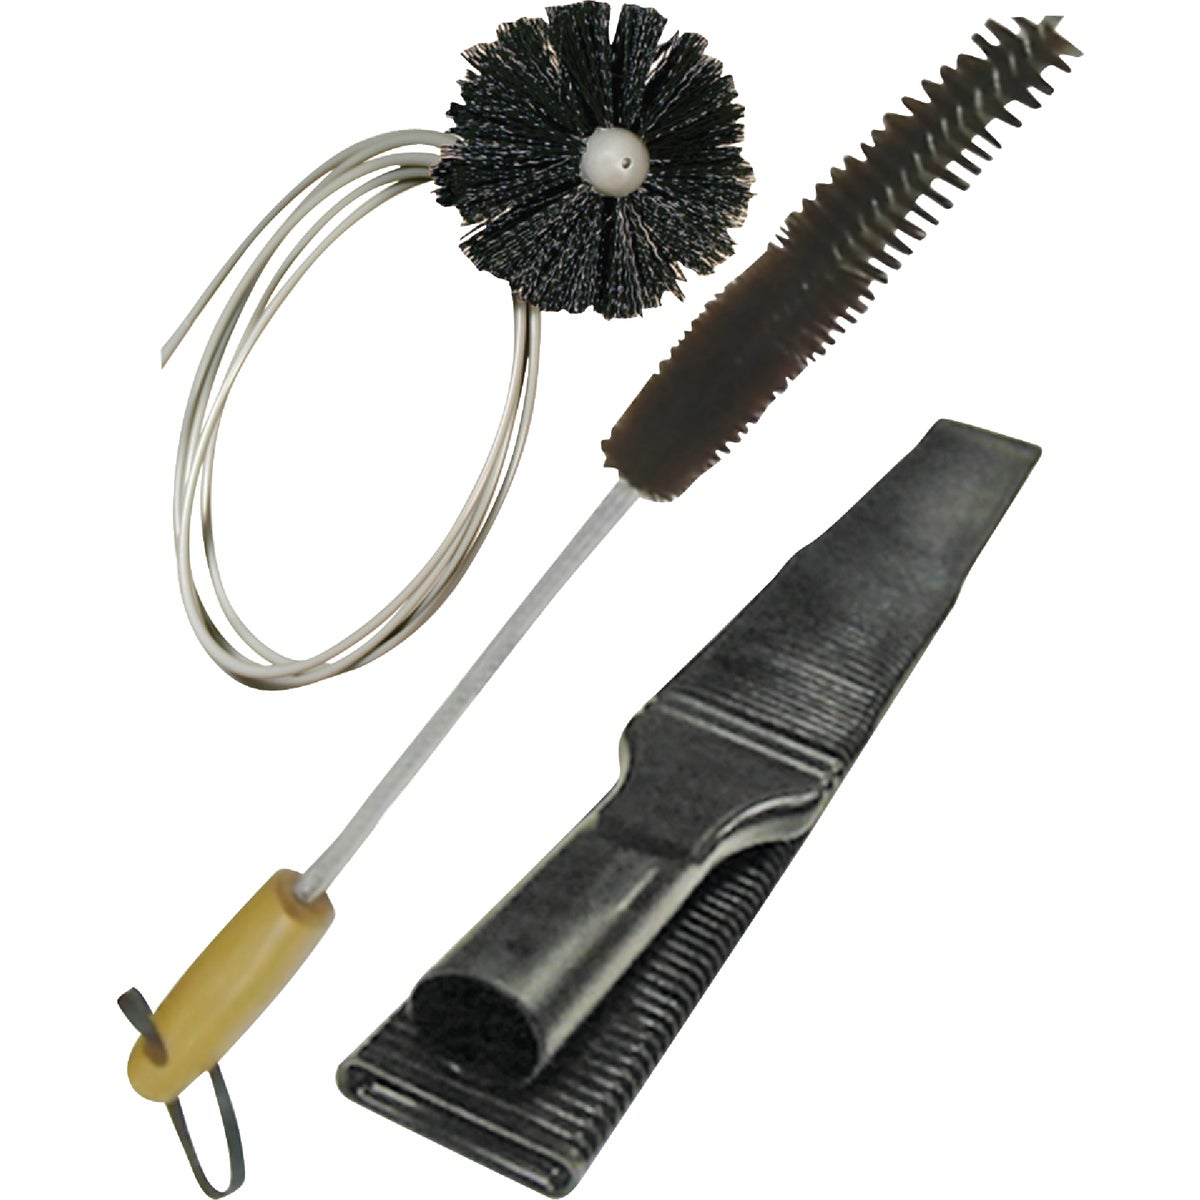 3PC DRYER DUCT CLEAN KIT - BPCK by Dundas Jafine